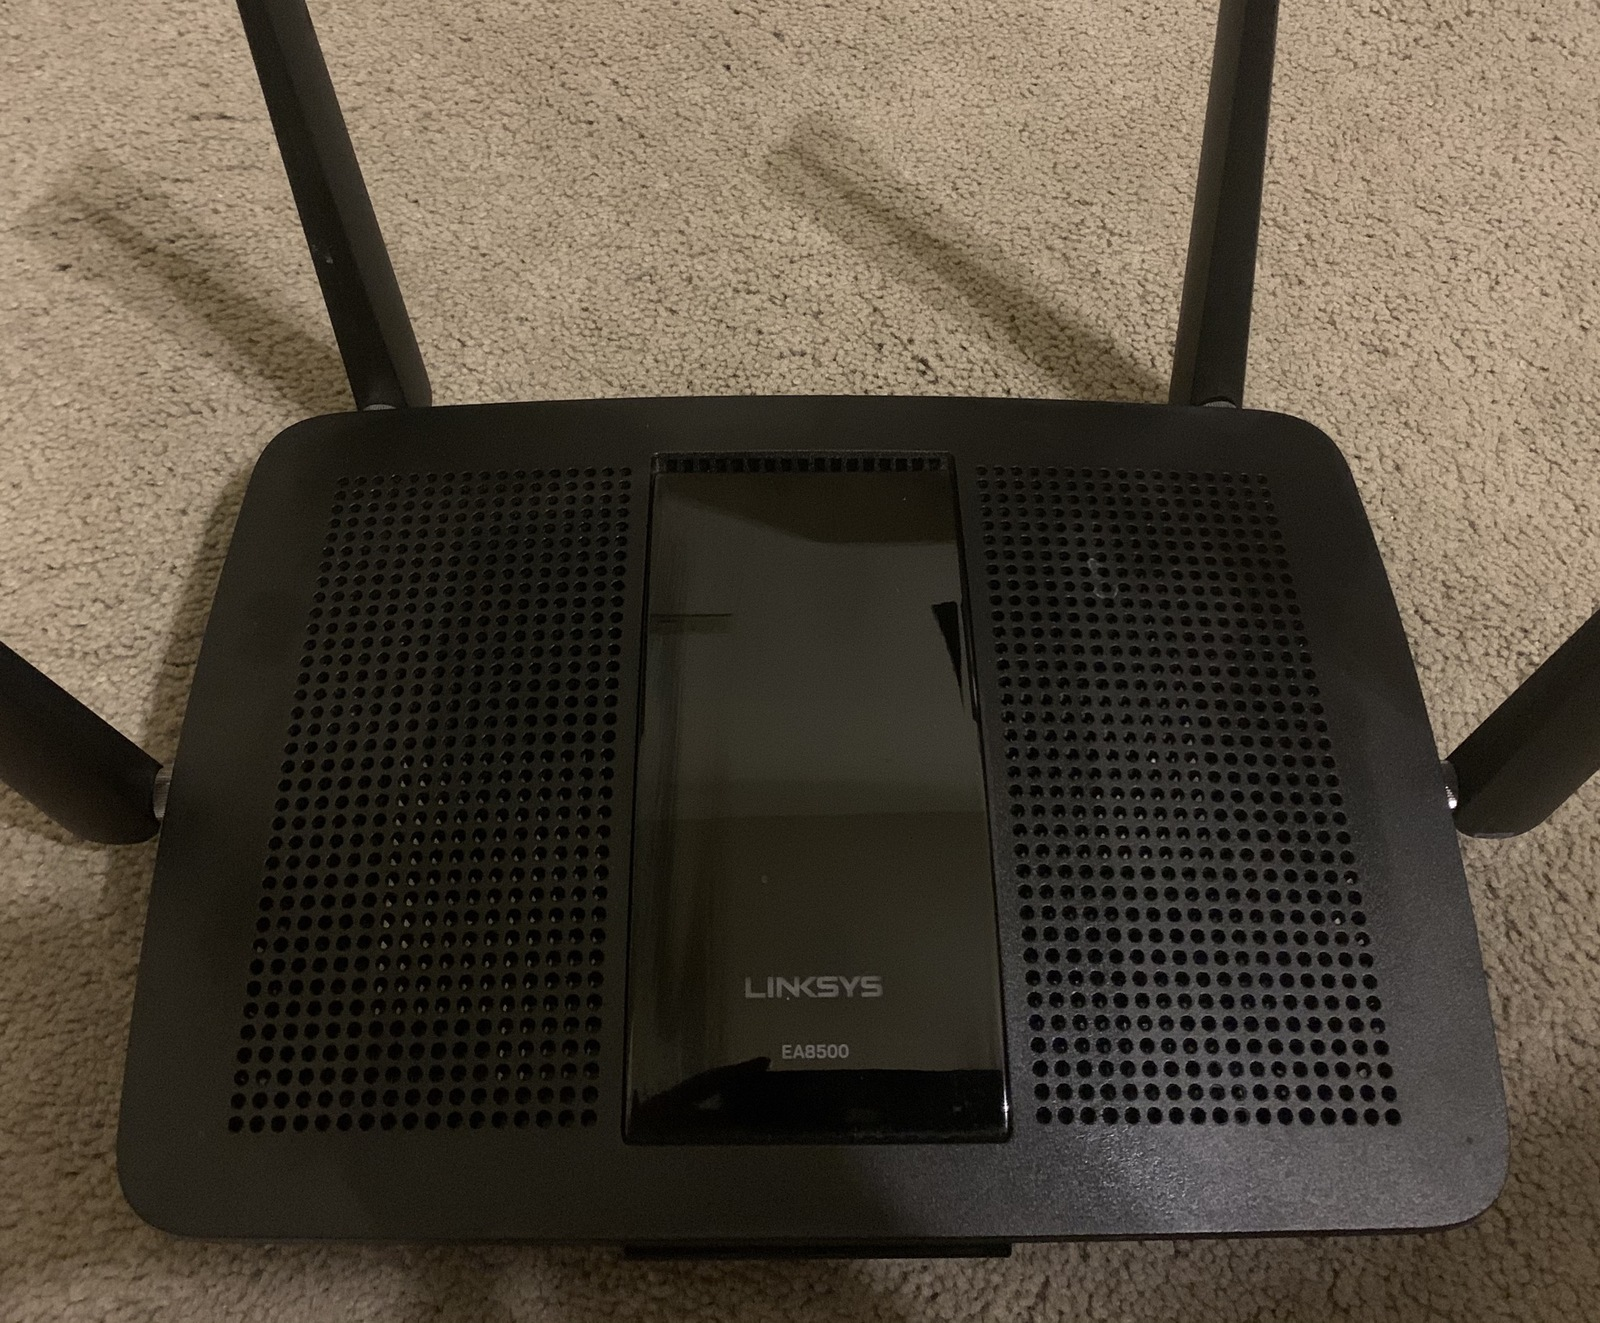 Primary image for Linksys Max-Stream AC2600 MU-MIMO Smart WI-FI Gigabit Router (EA8500)